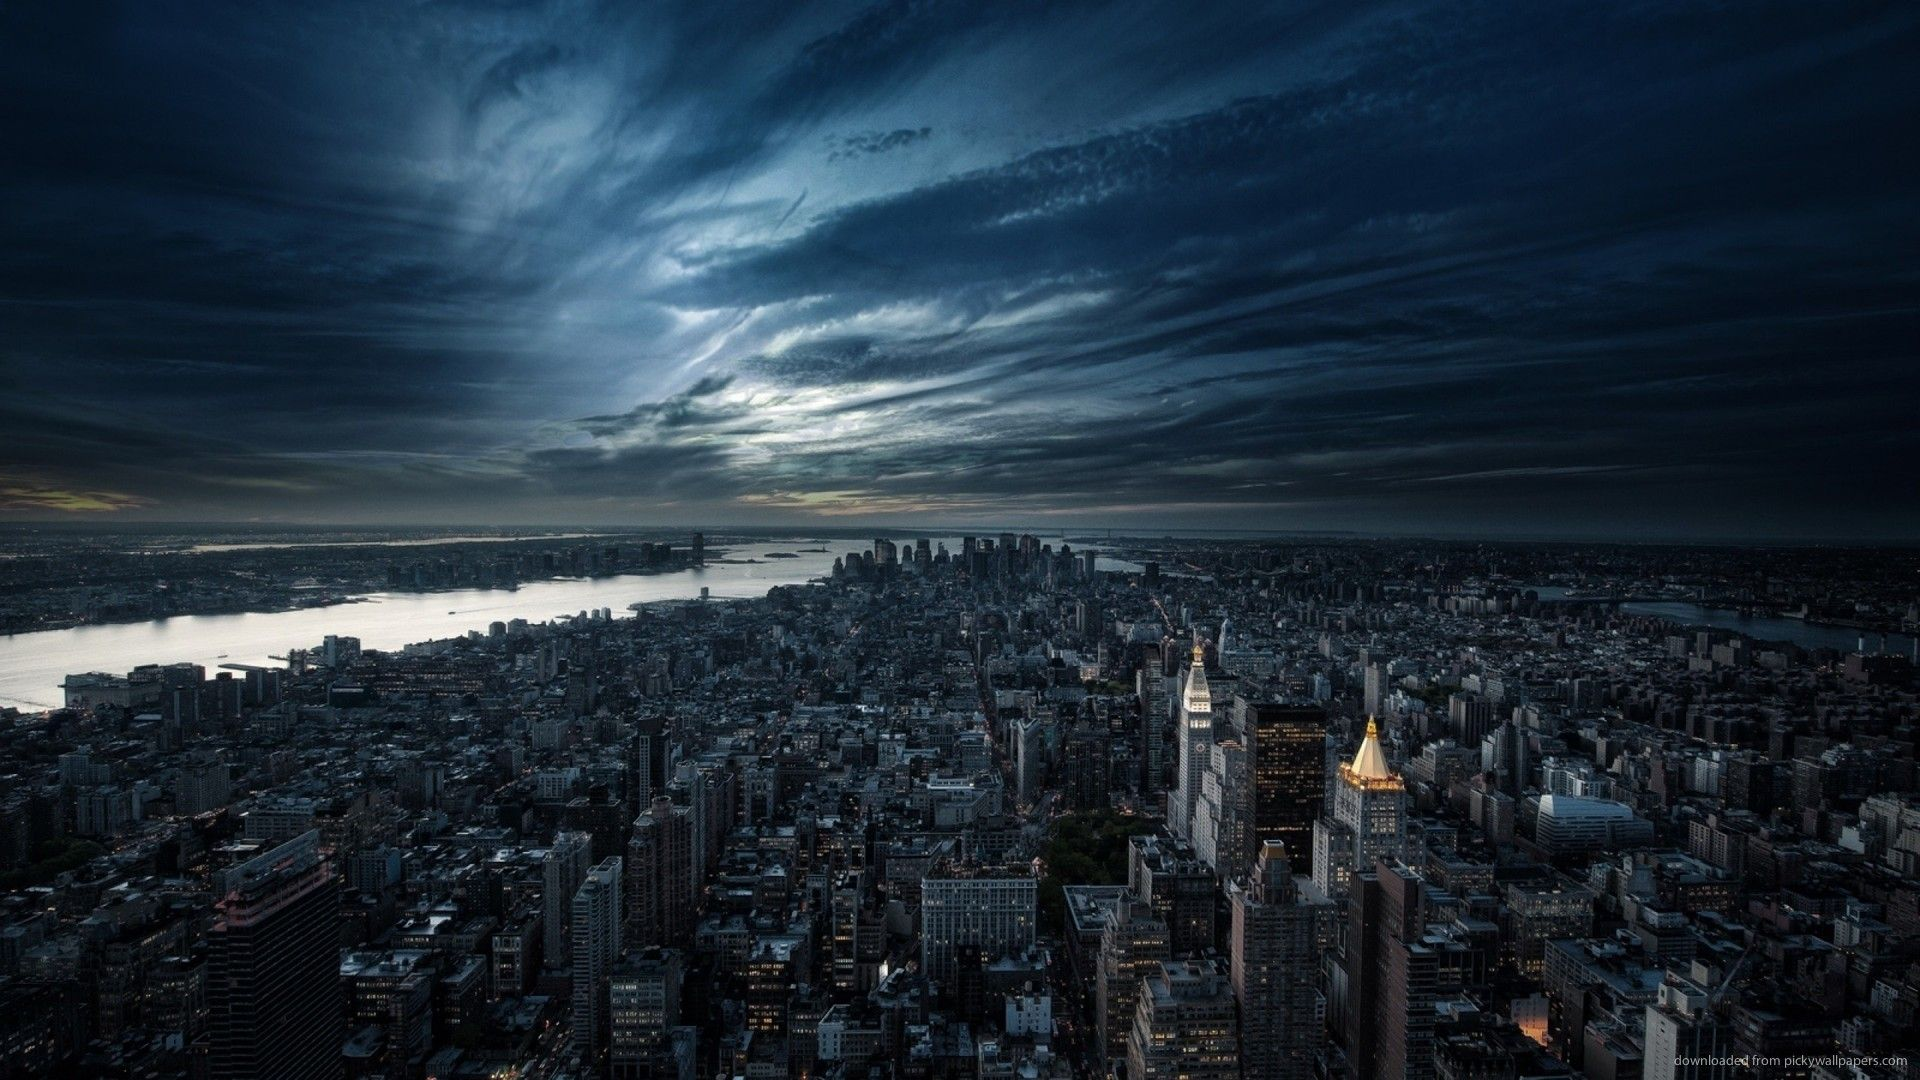 Dark Sky Wallpapers Android With High Definition Wallpaper 1920x1080 Px 410 83 Kb City Wallpaper Cityscape Wallpaper Cityscape